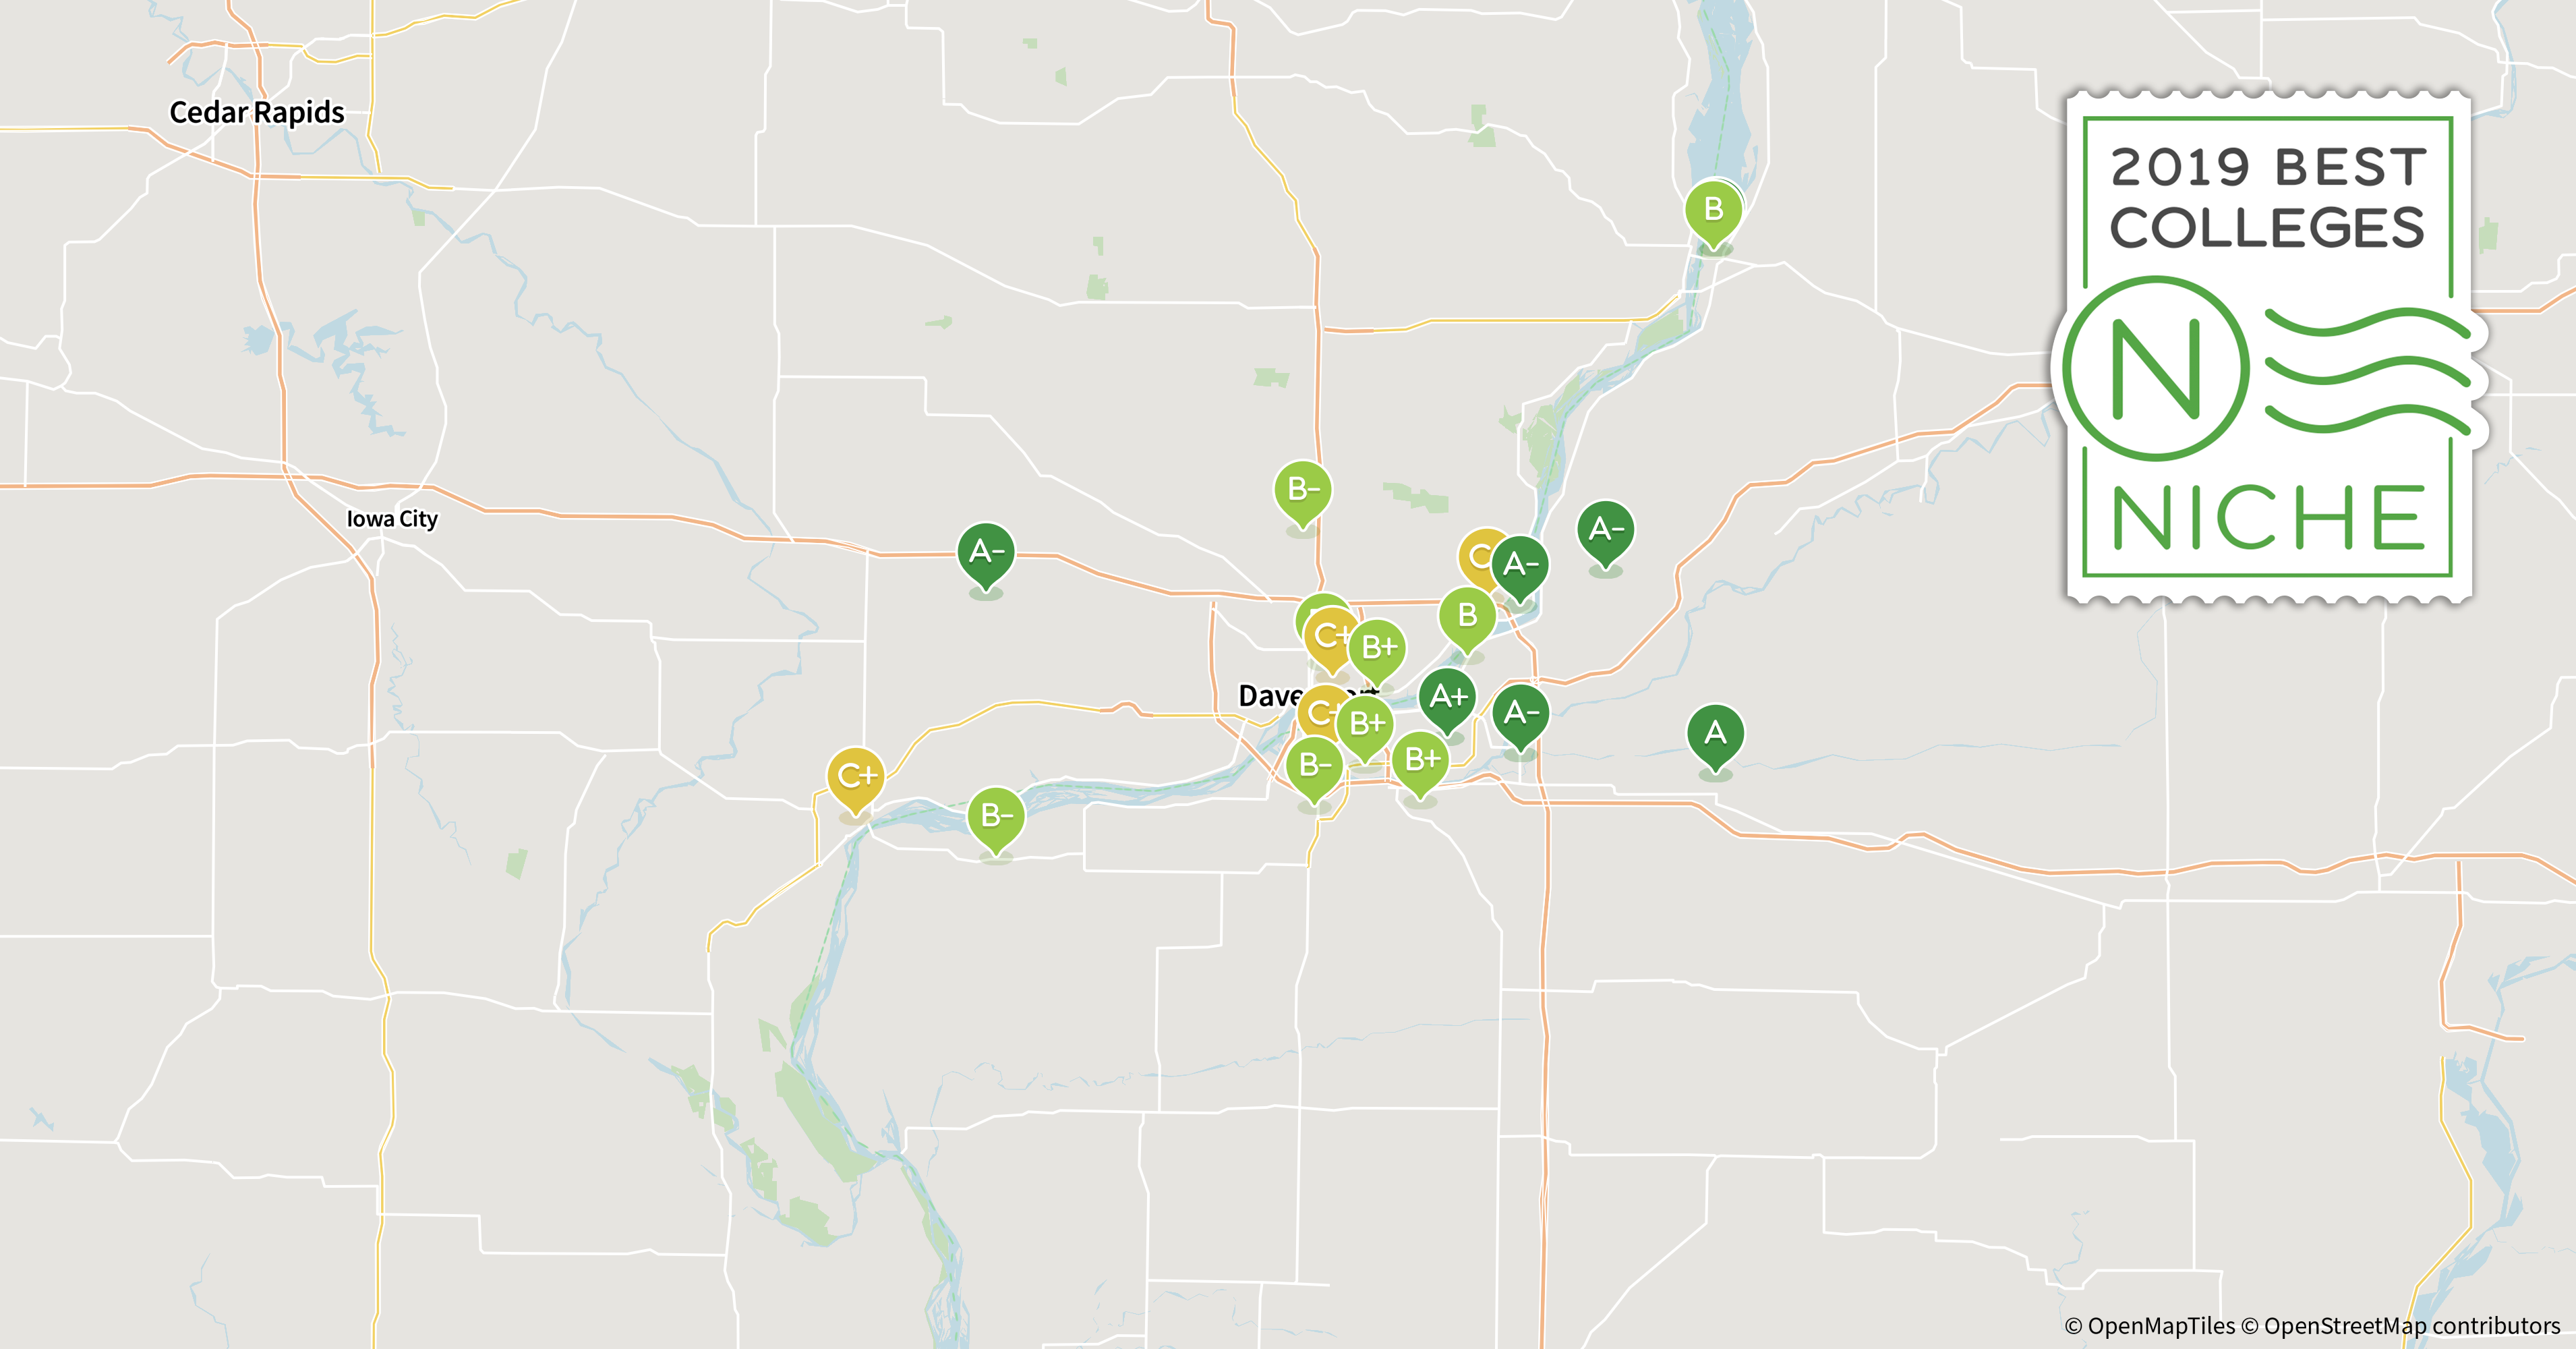 2019 Top Graduate Programs in the Quad Cities Area - Niche Kaplan University Davenport Campus Map on maryland campus map, city college campus map, witcc campus map, kaplan university clubs, cuyahoga community college campus map, art institute campus map, kaplan college map, minnesota campus map, kaplan university certificate programs, marshalltown community college campus map, berkeley college campus map, kaplan university criminal justice, nebraska campus map, scott community college campus map, kaplan university catalog, kaplan university transcripts, york college campus map, northwestern college campus map, cornell college campus map, kaplan university tuition,